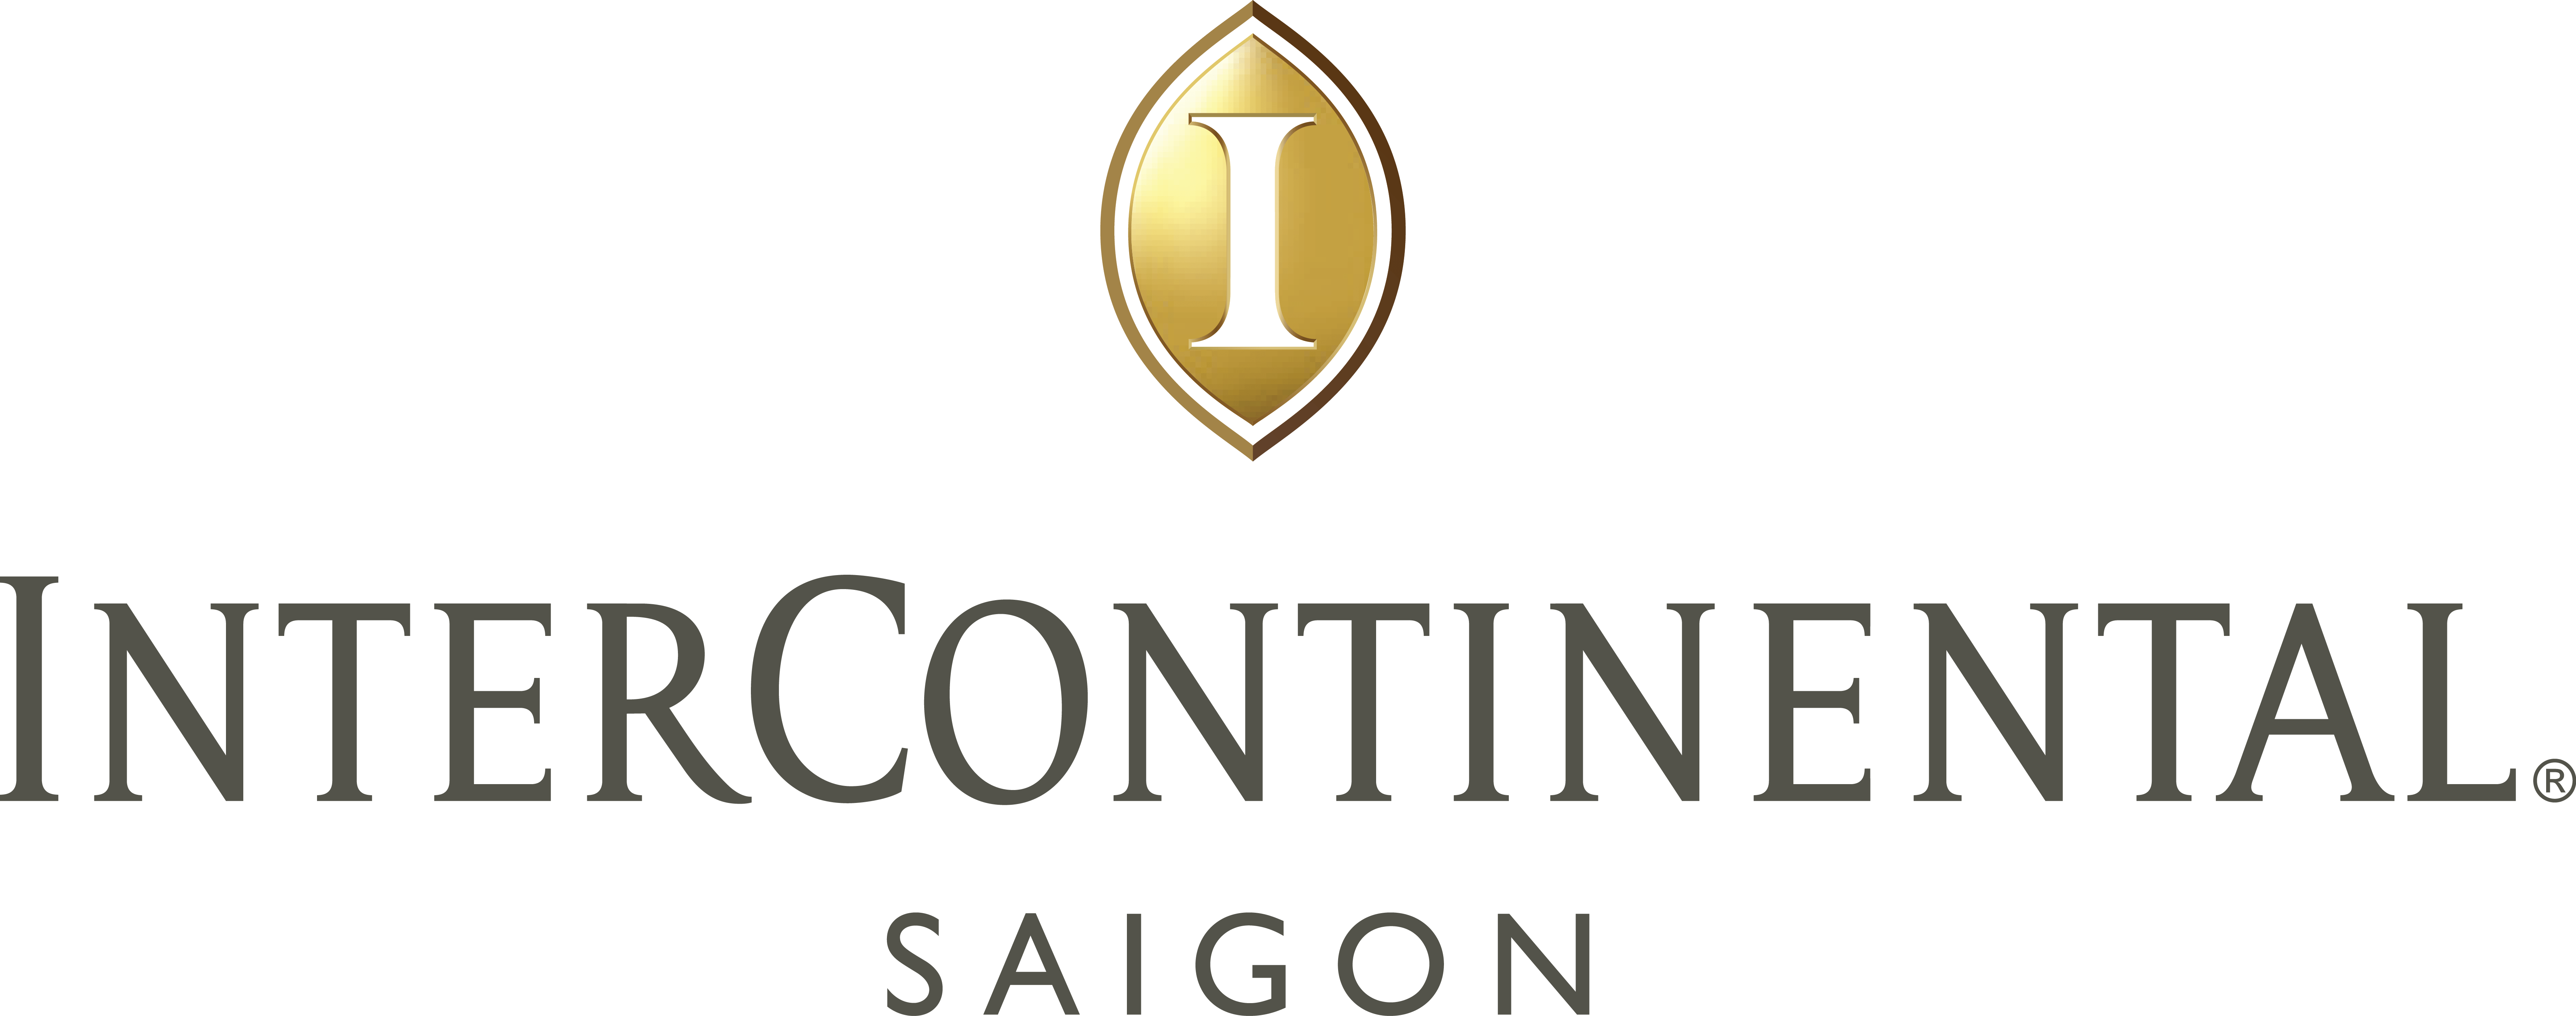 InterContinental Saigon Logo Desktop